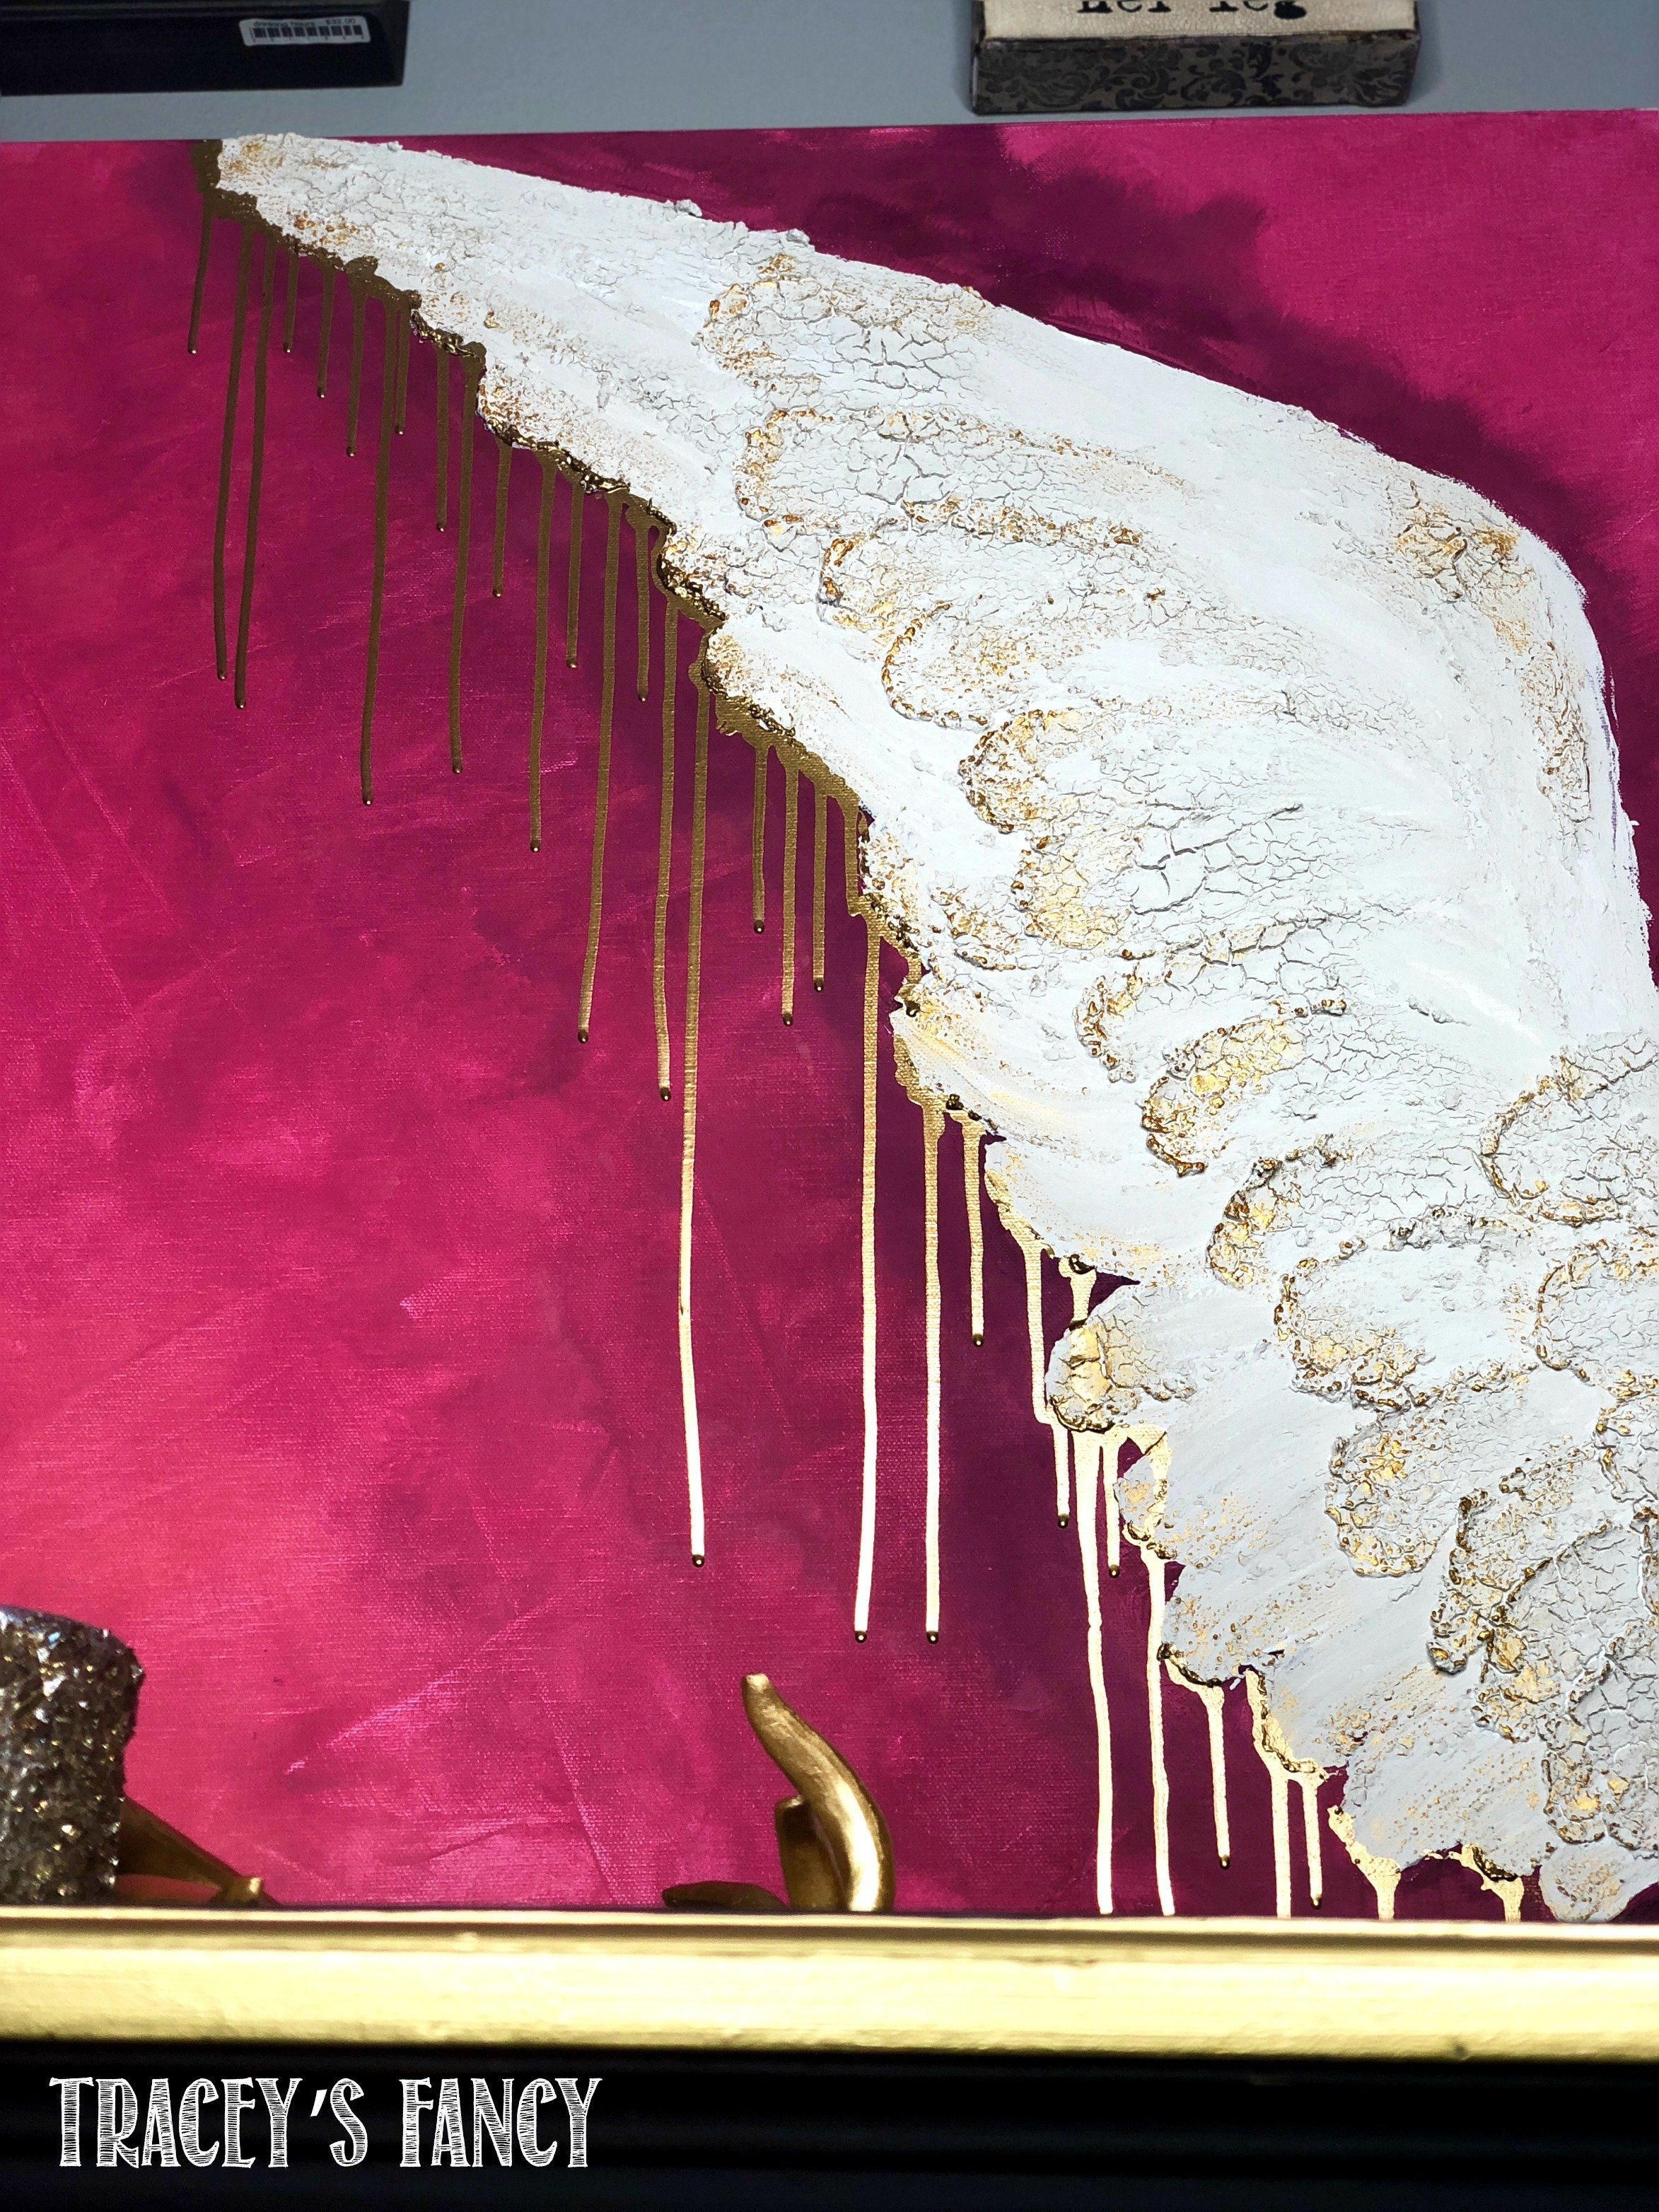 The Art of Hand-Painted Angel Wings